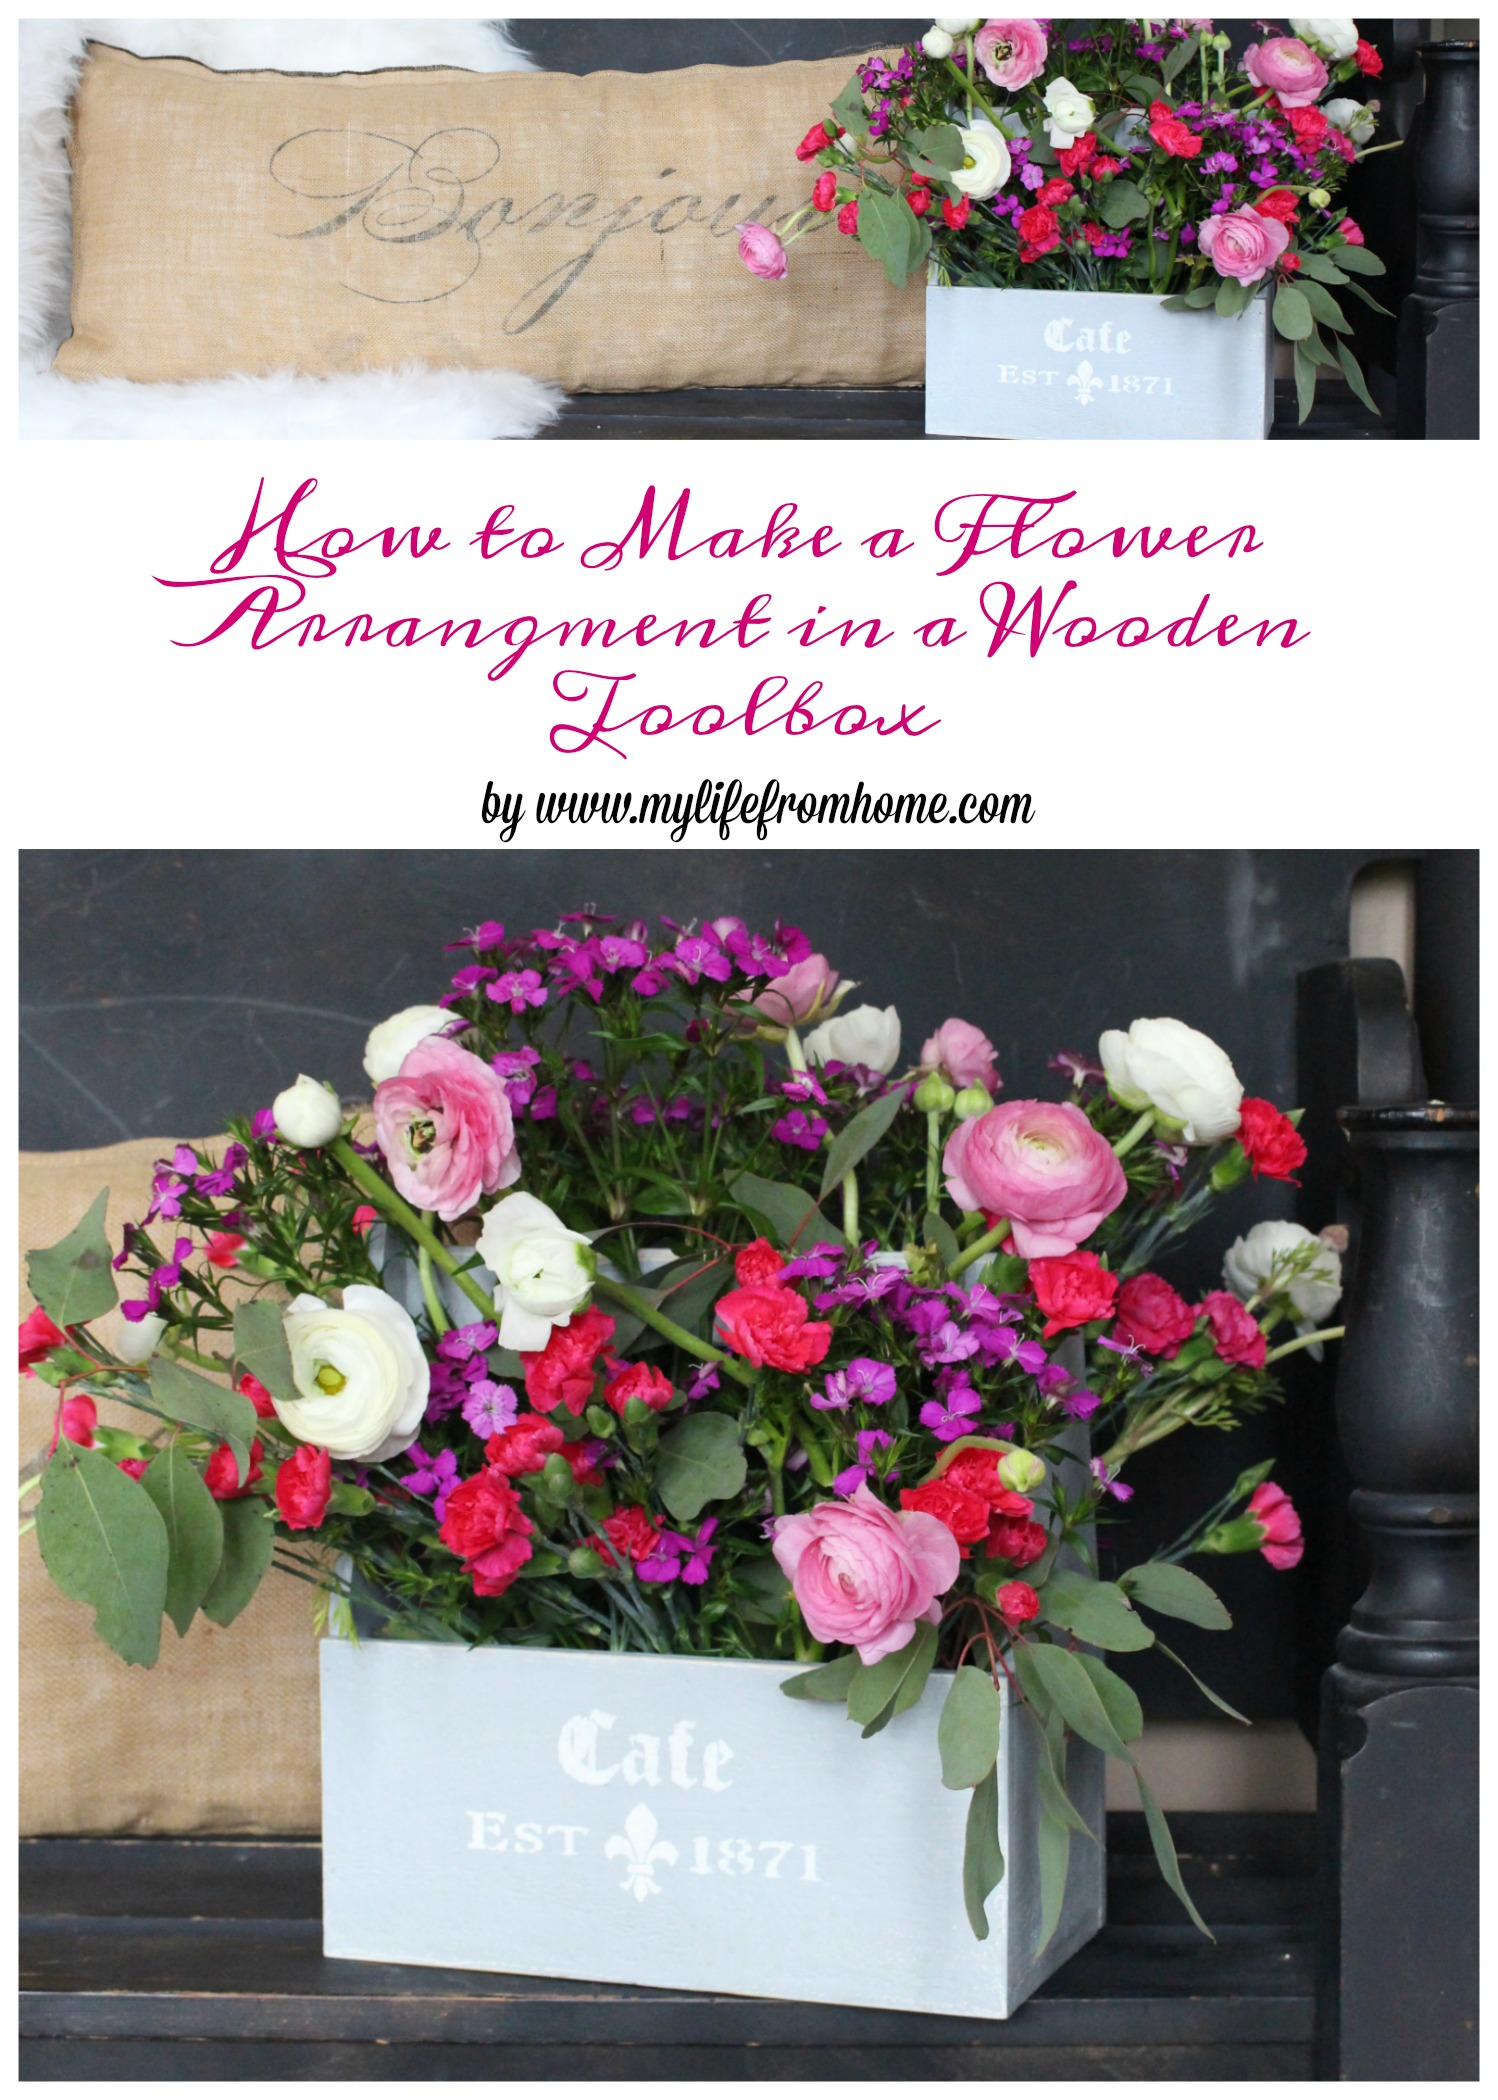 How to Make a Flower Arrangement in a Wooden Toolbox- flowers- arranging flowers- spring flowers- gardening indoors- farmhouse flowers- stenciled toolbox- french country flowers- cottage style